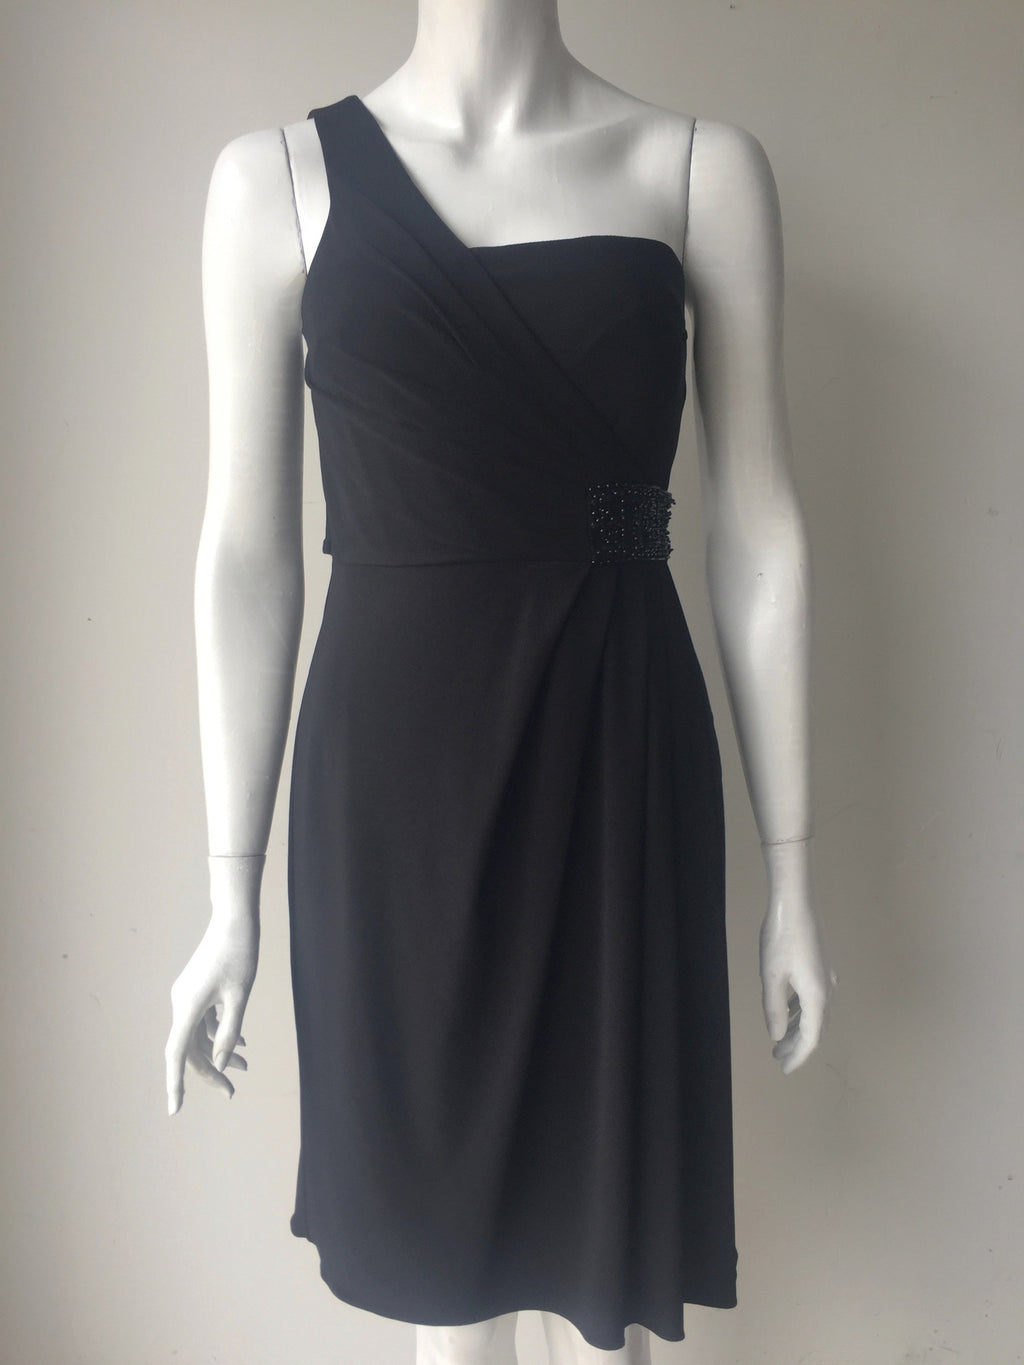 J S Boutique One Strap Beaded Black Dress Size 4